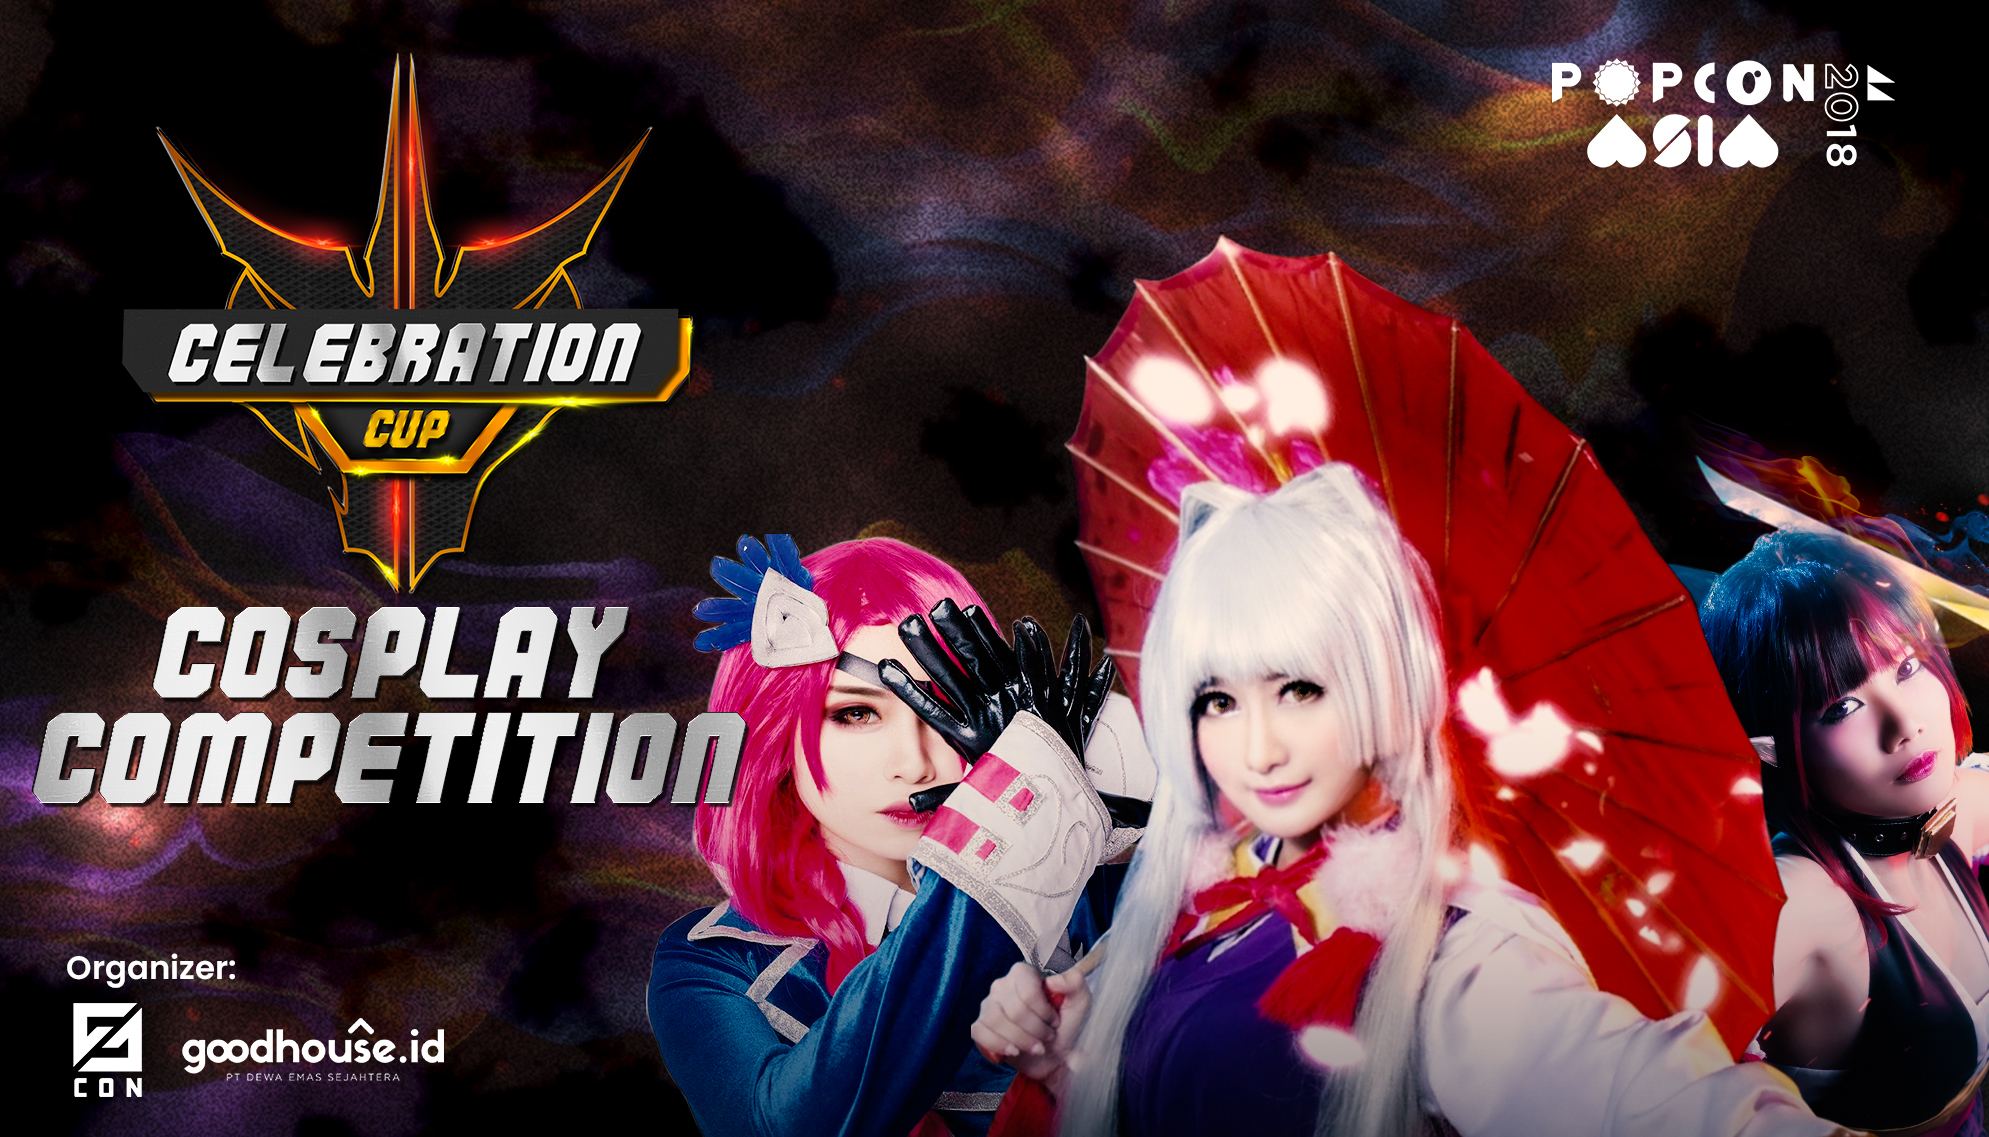 Celebration Cup Cosplay Competition